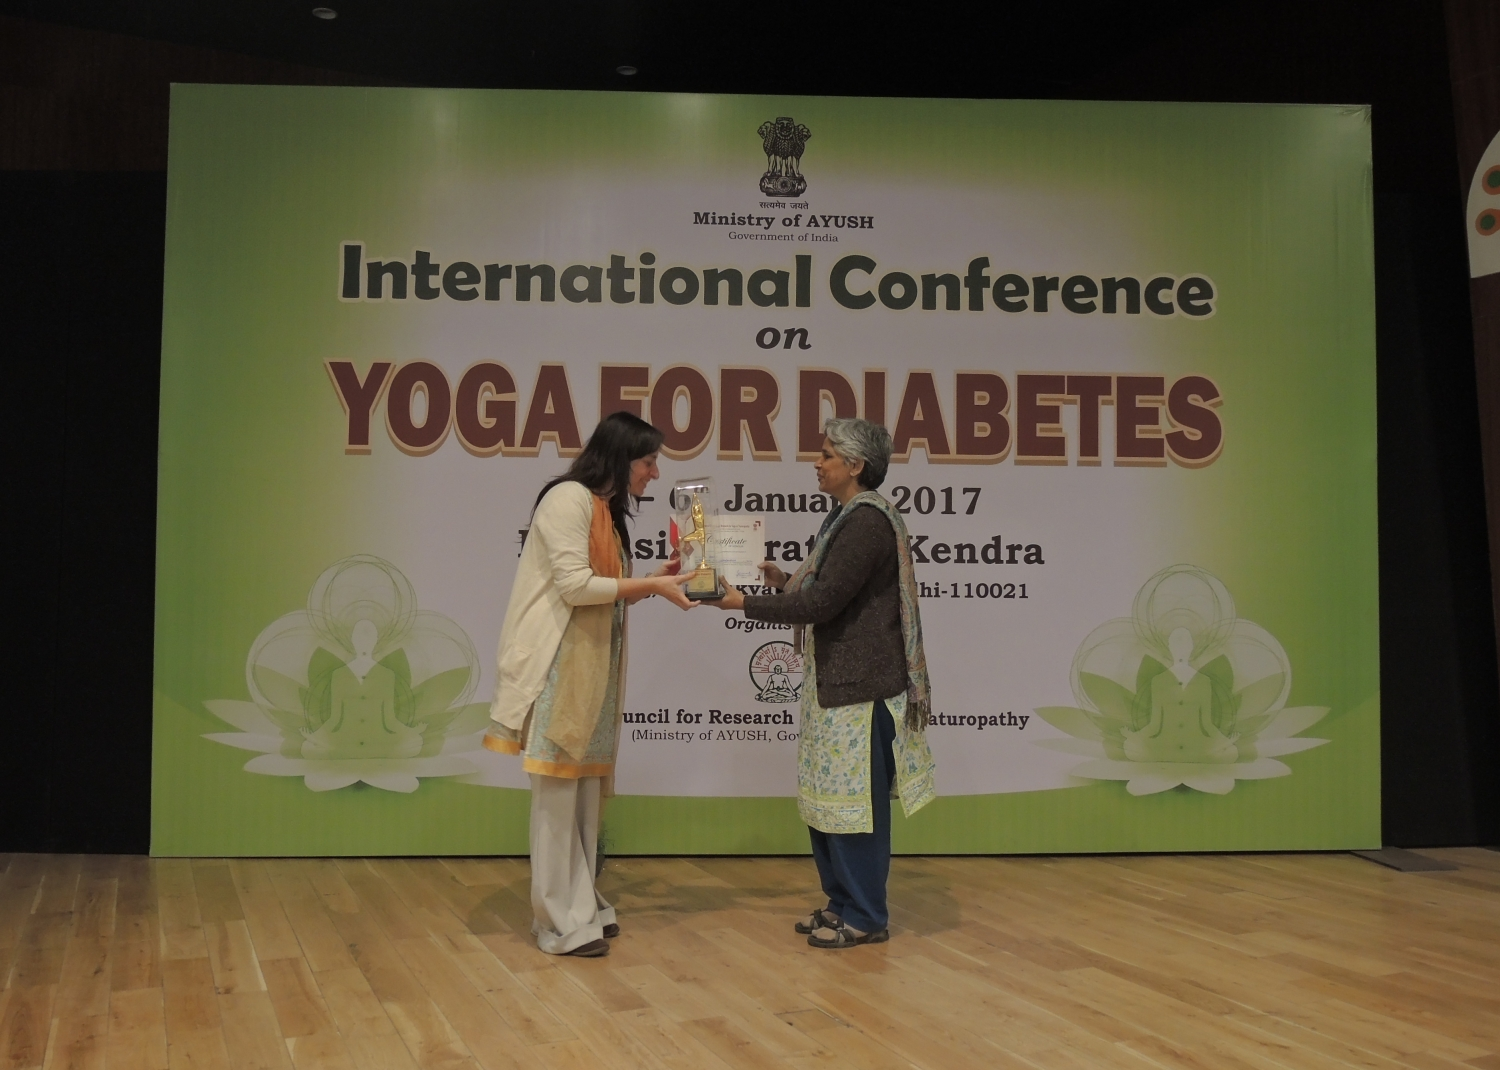 International Conference on Yoga and Diabetes - Índia, Dillí - 2017, janvier - Central Council for Research in Yoga & Naturopathy